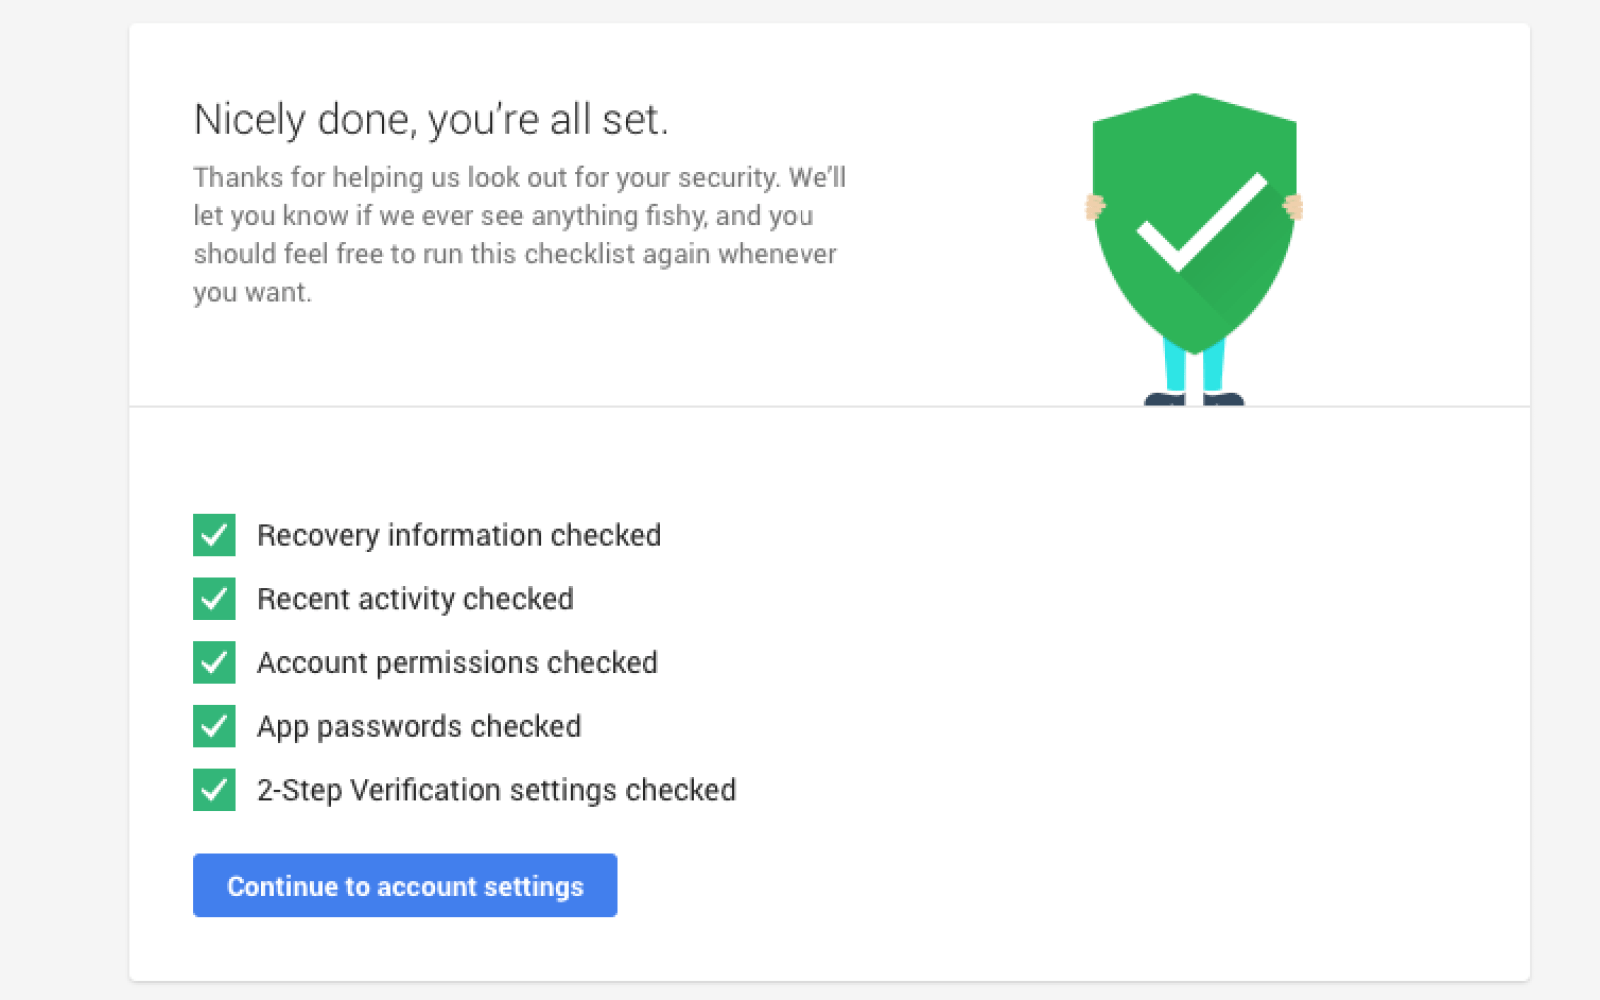 Take 30 seconds to check your Google account security, get 2GB extra on Google Drive